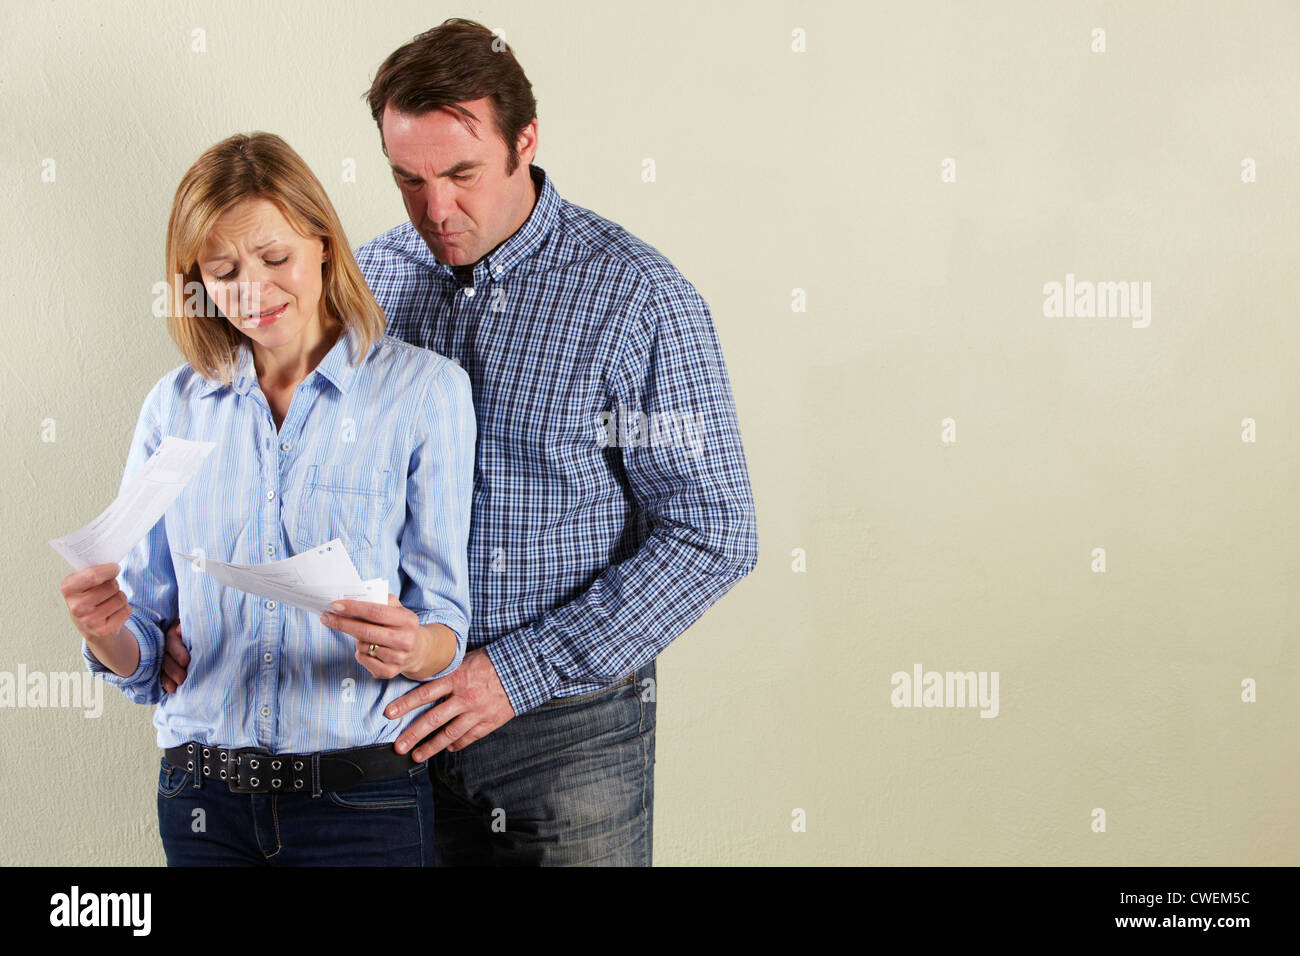 Studio Shot Of Middle Aged Couple Looking at Bills - Stock Image